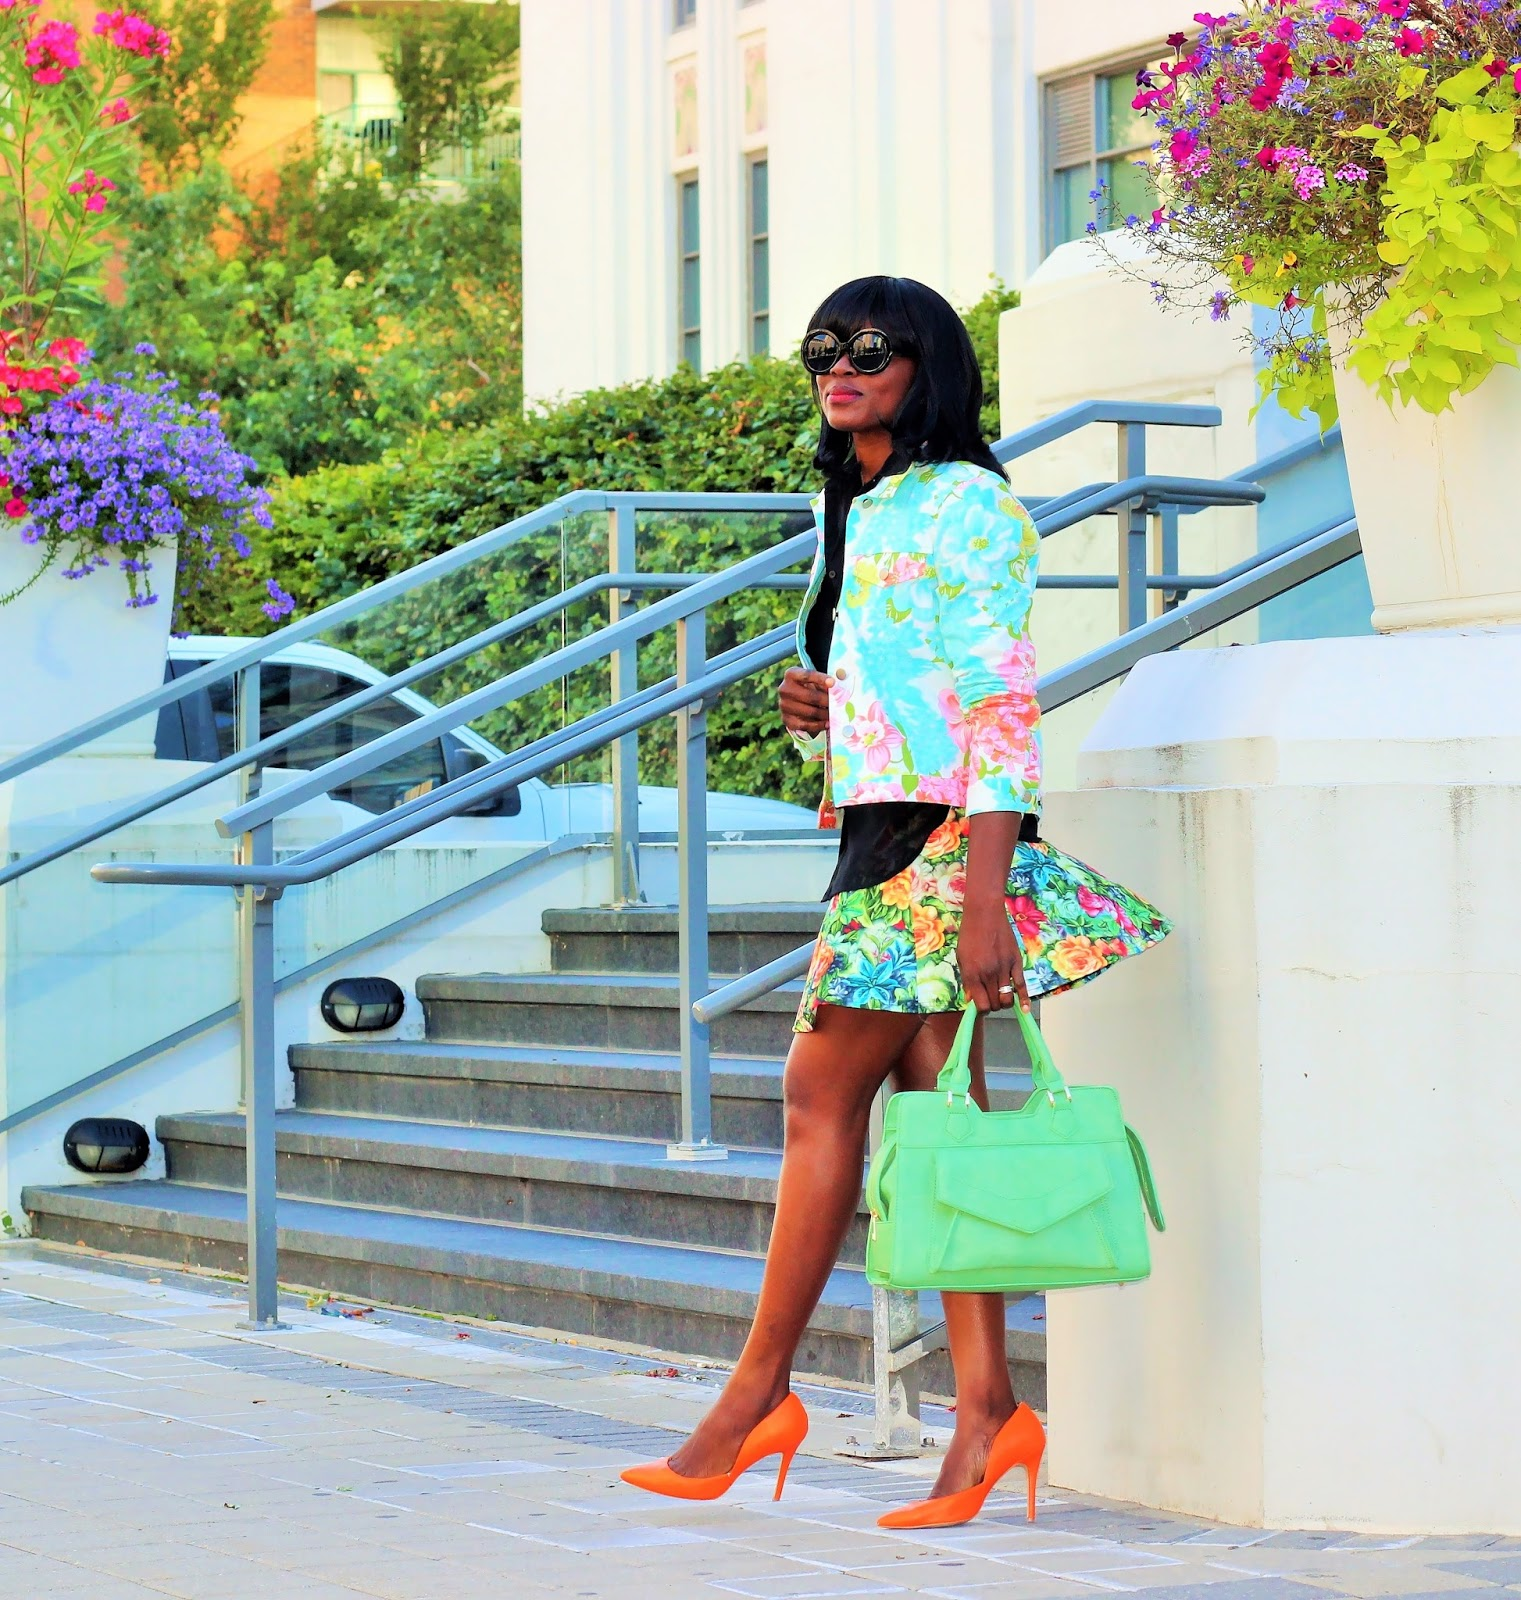 FALL IN PRINTS:Floral print outfit